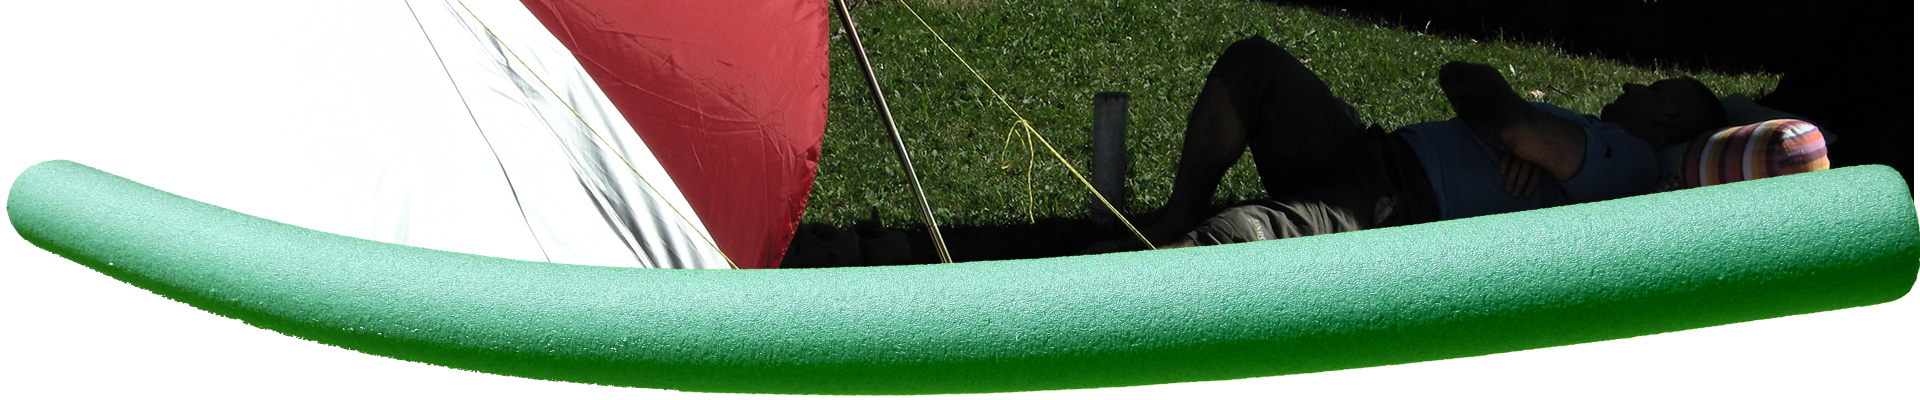 guy-napping-and-tent-lines-with-green-pool-noodle